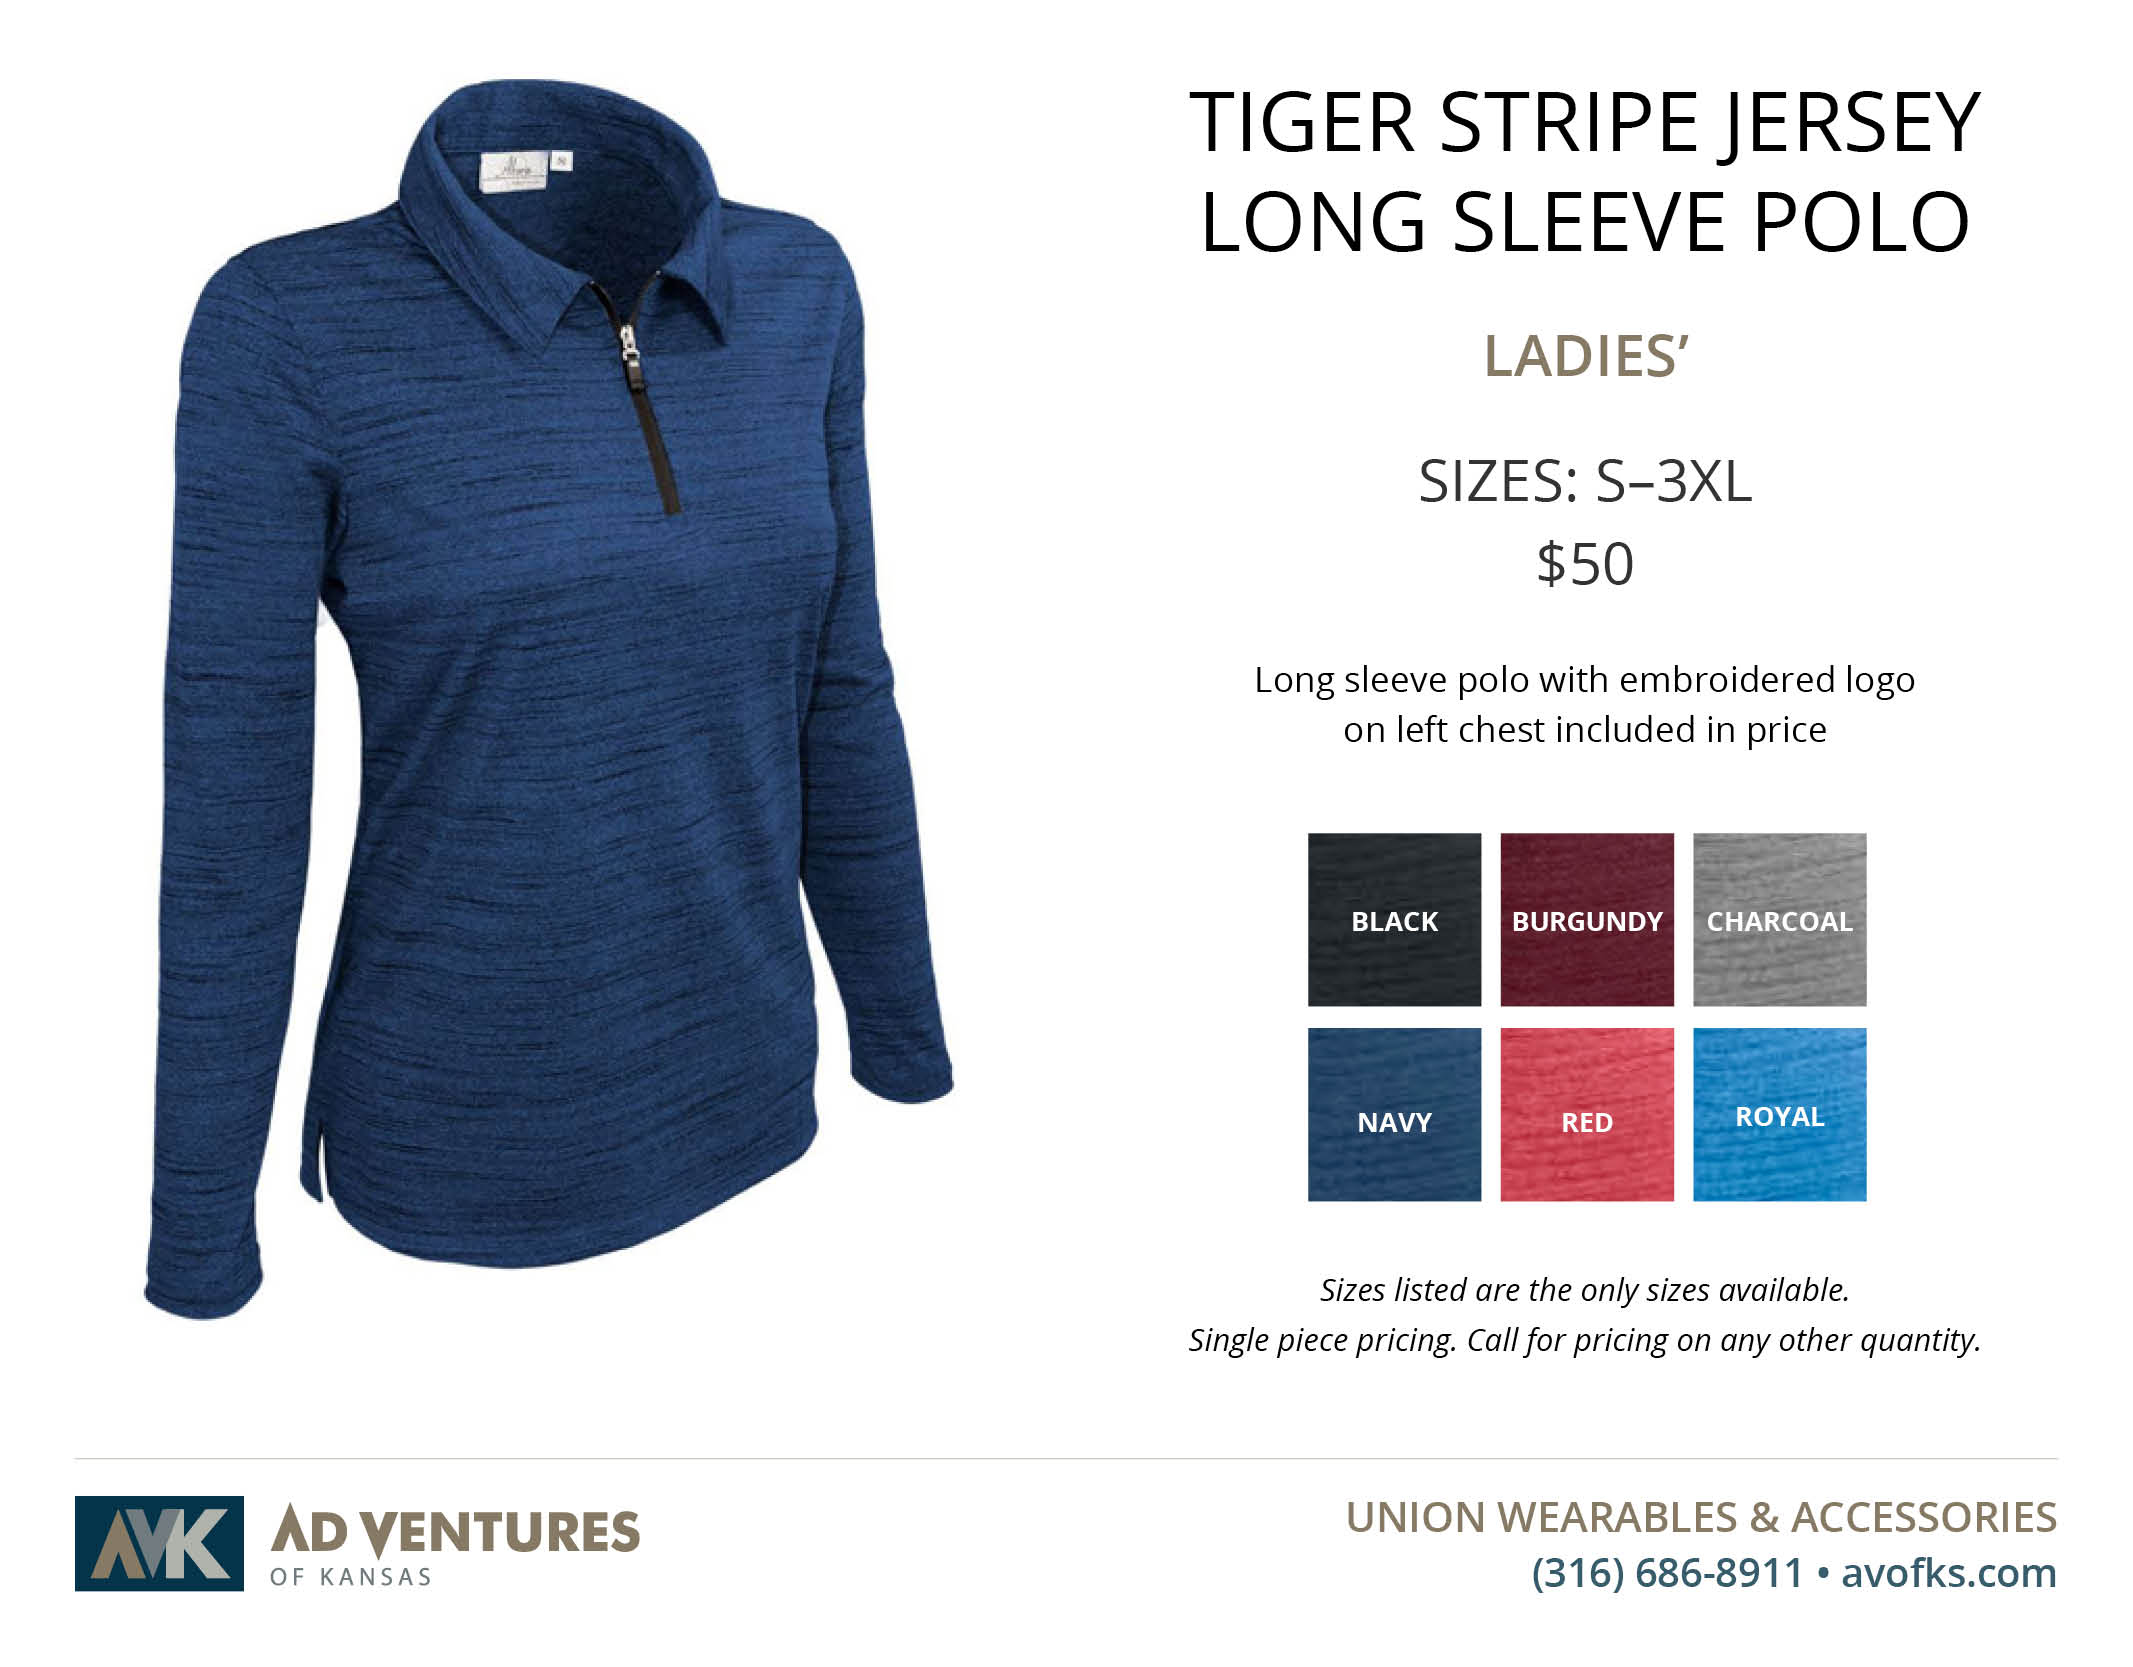 ladies tiger stripe jersey long sleeve polo